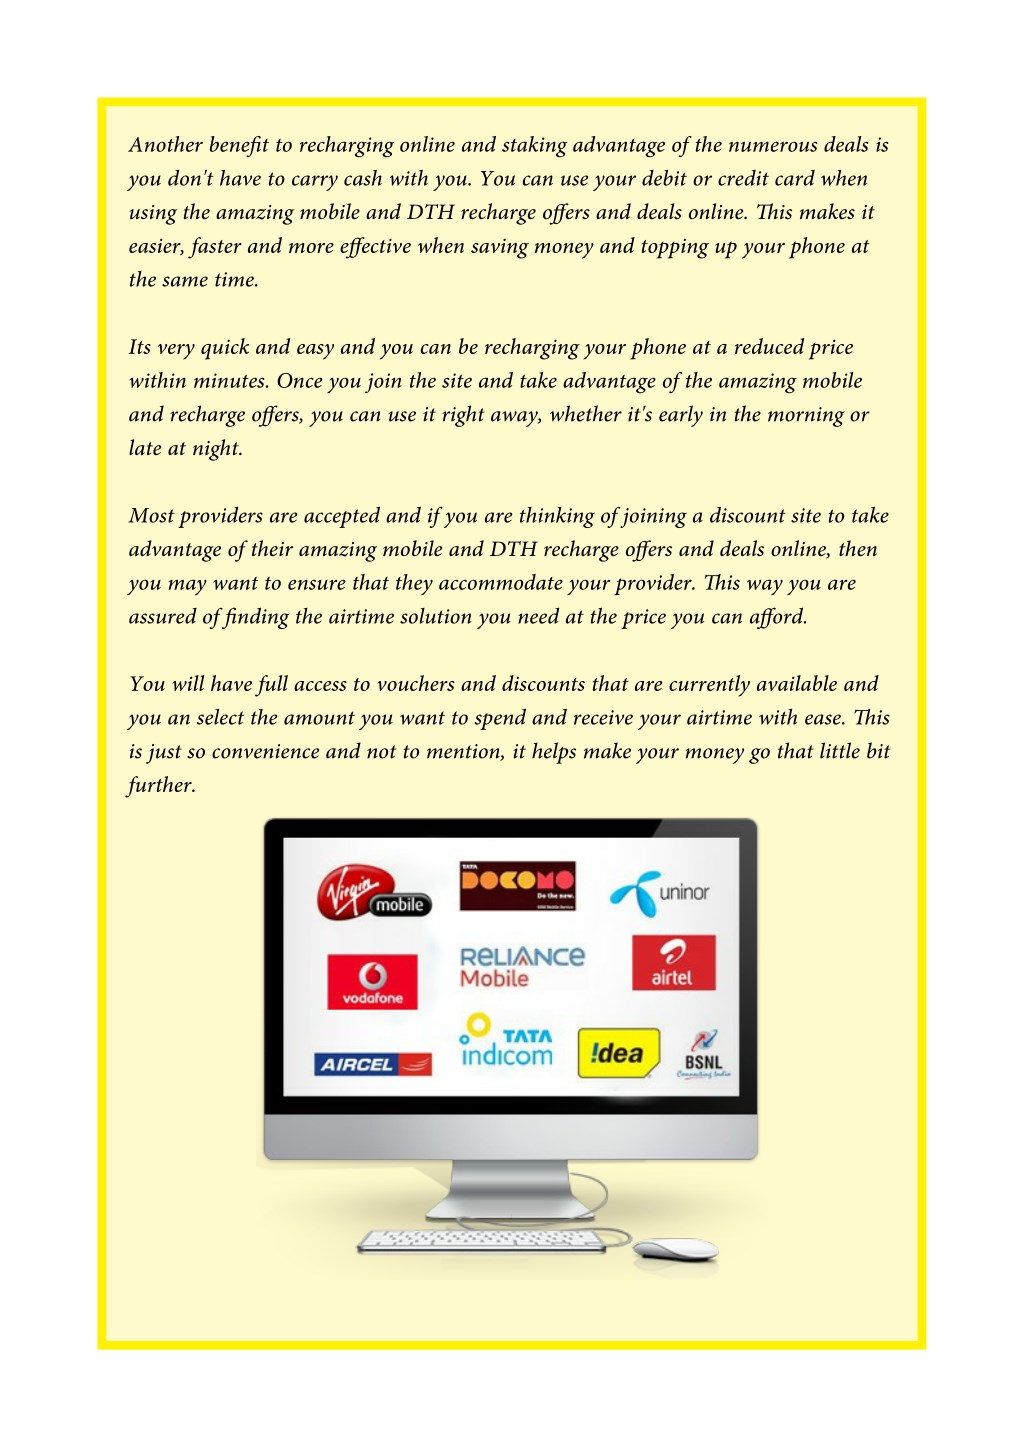 PPT - Benefits of Taking Advantages of Mobile and DTH